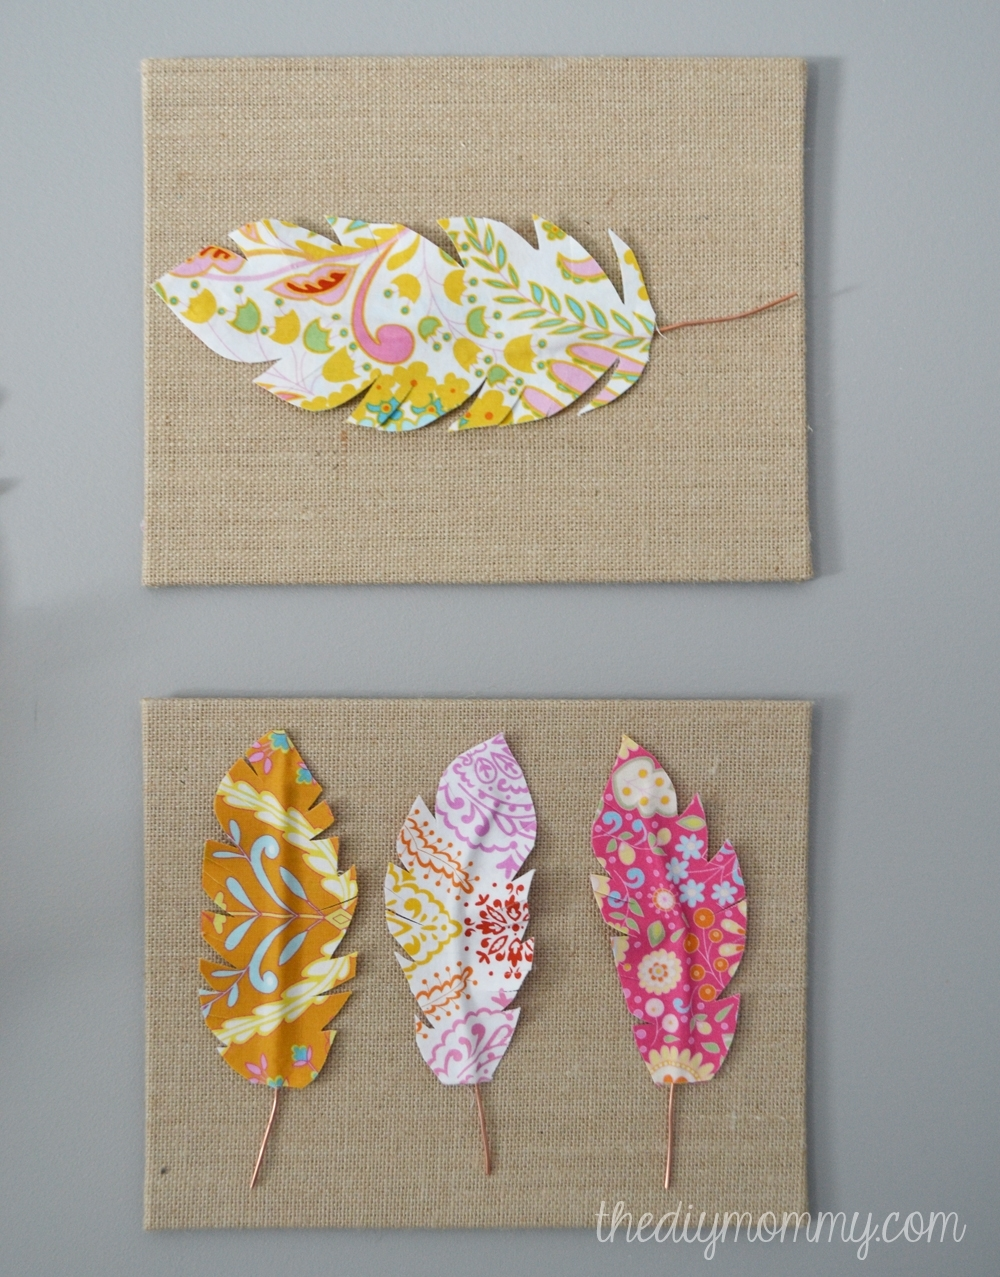 Make Fabric Feather Wall Art | The Diy Mommy Regarding Most Up To Date Canvas Wall Art With Fabric (View 10 of 15)